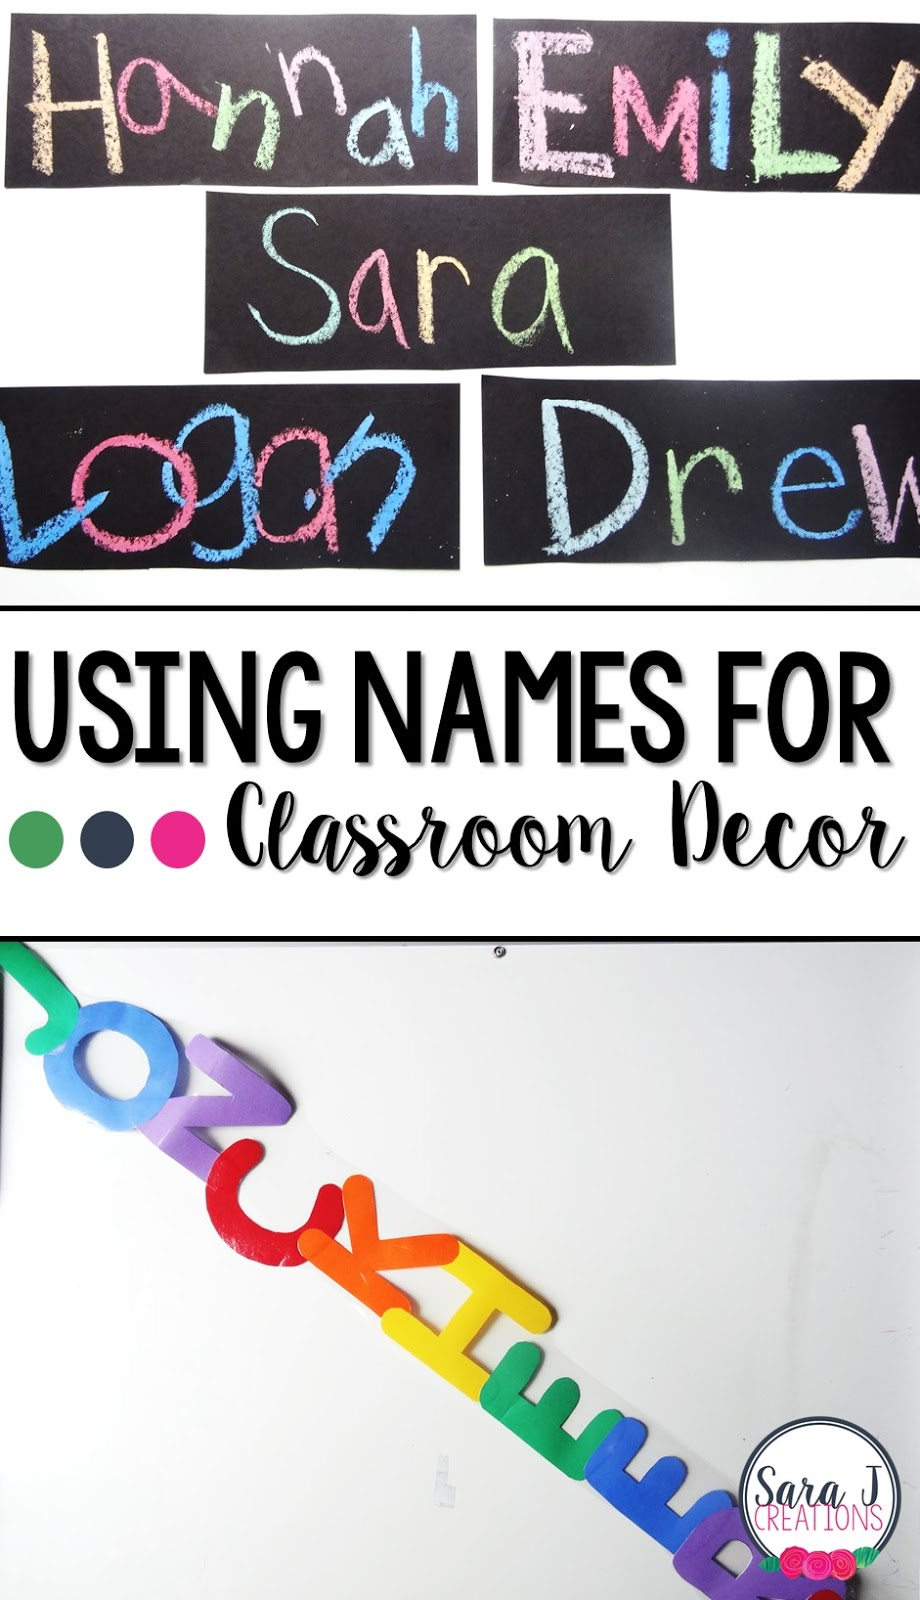 Need some ideas for DIY classroom decor for an elementary classroom?  I love using student names as part of the decor!  Great way to start off the back to school season with your students.